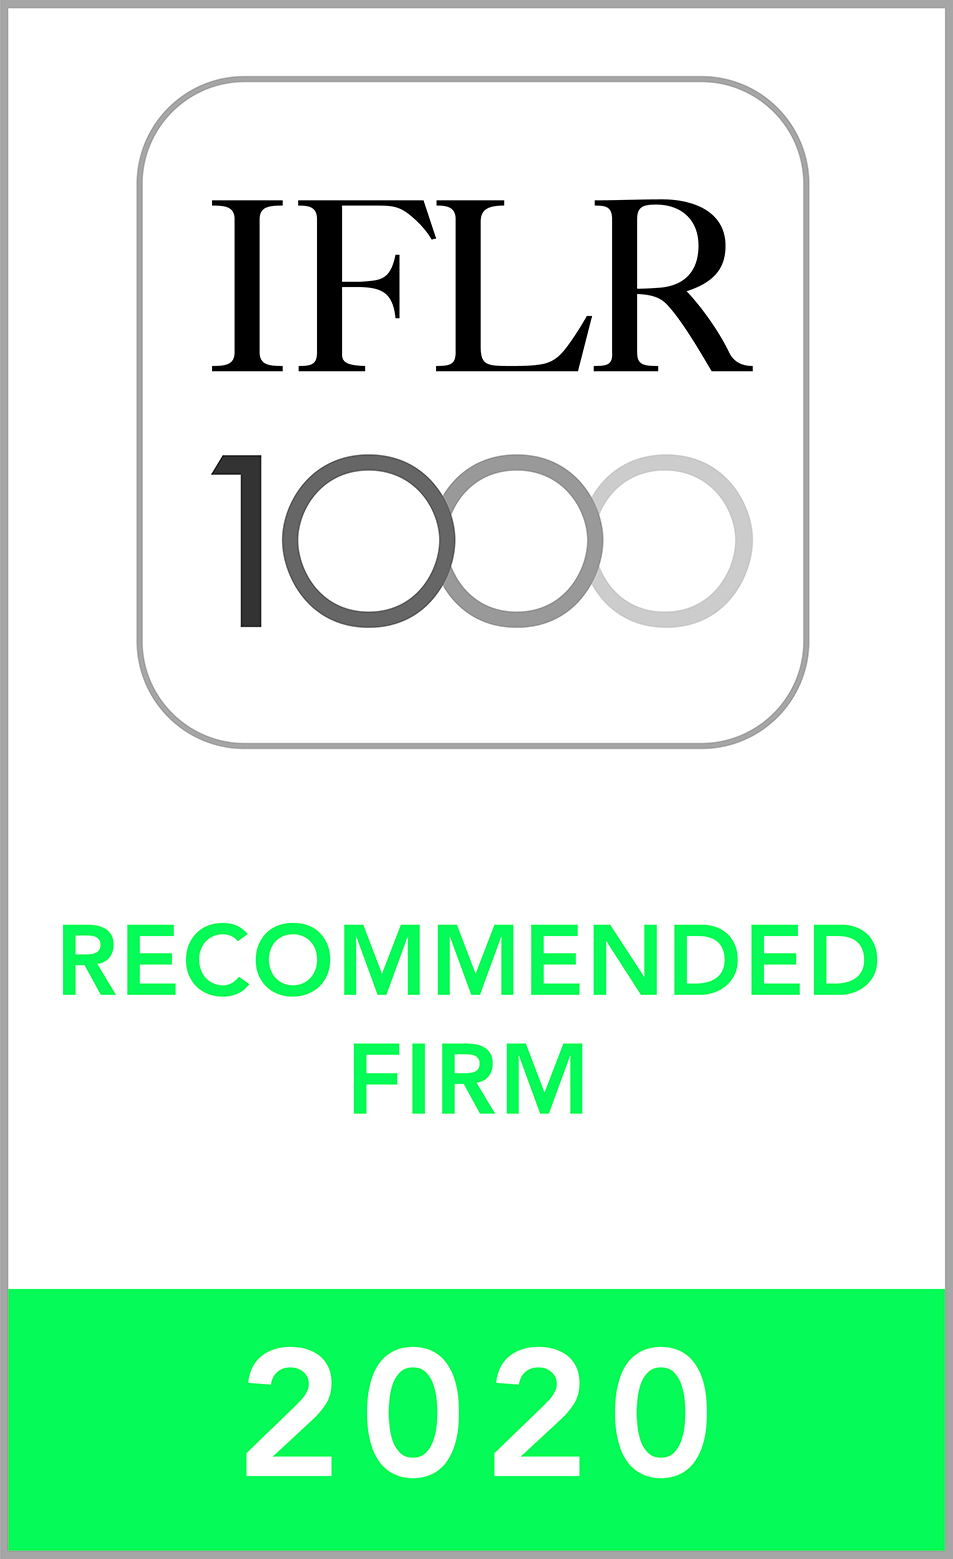 recommended-firm-20.jpg